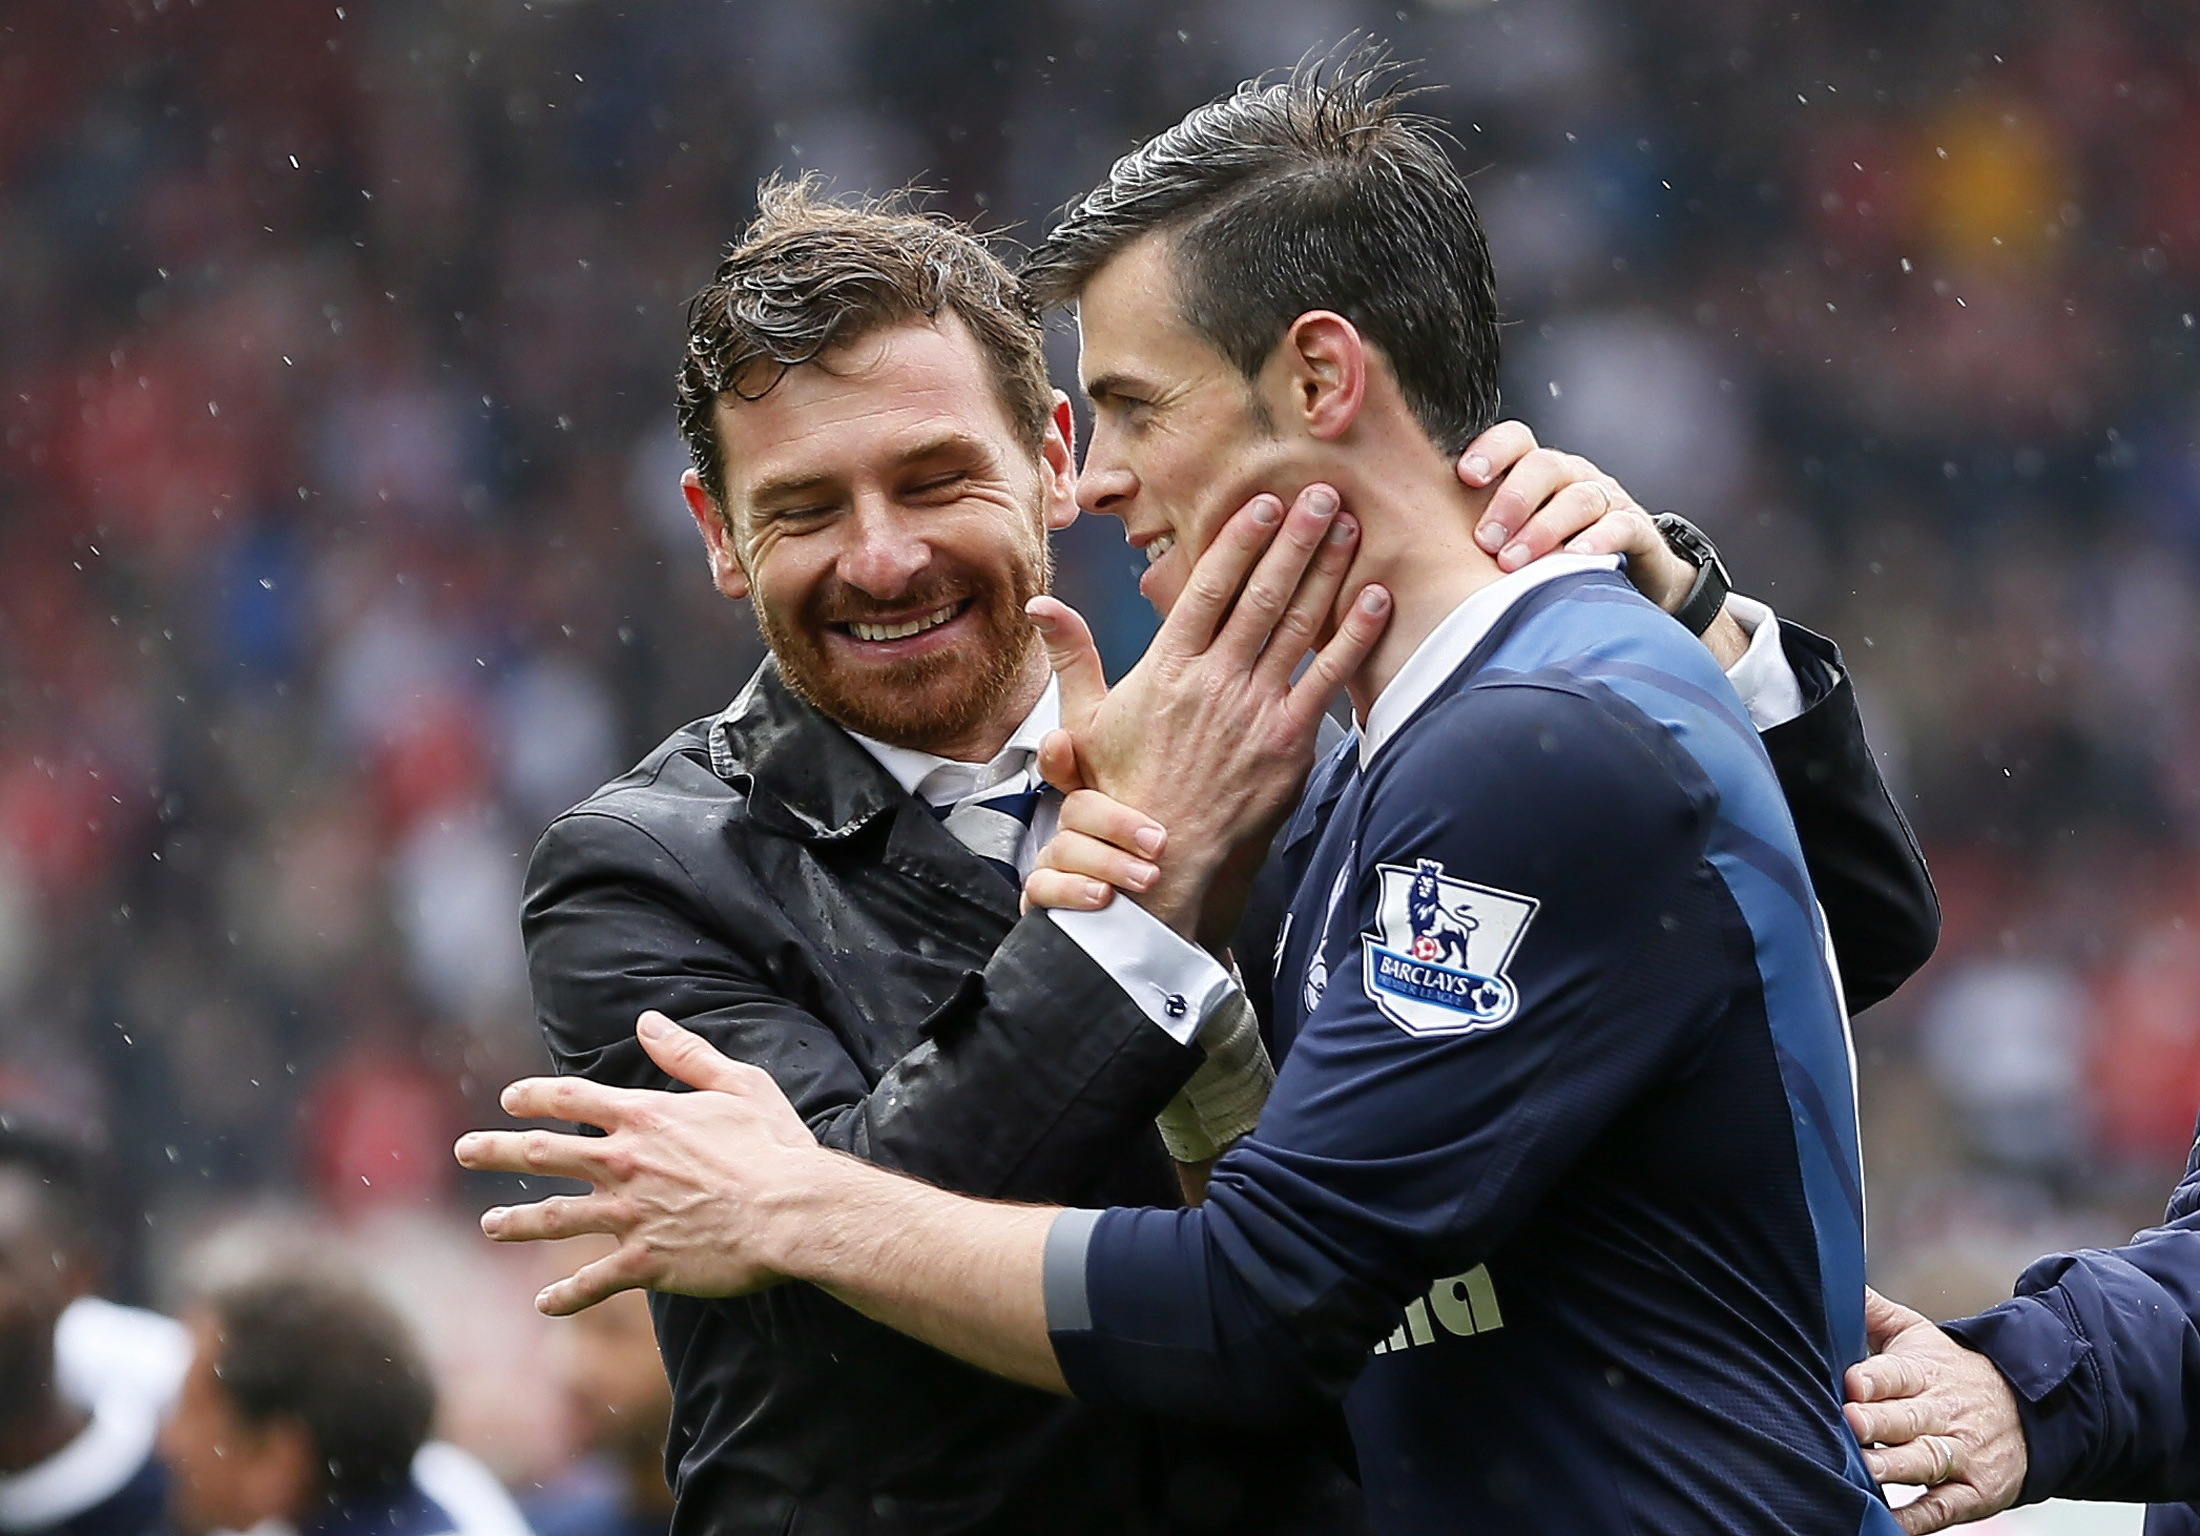 Ramping up the pressure: Andre Villas-Boas celebrates with Gareth Bale (Picture: Reuters)